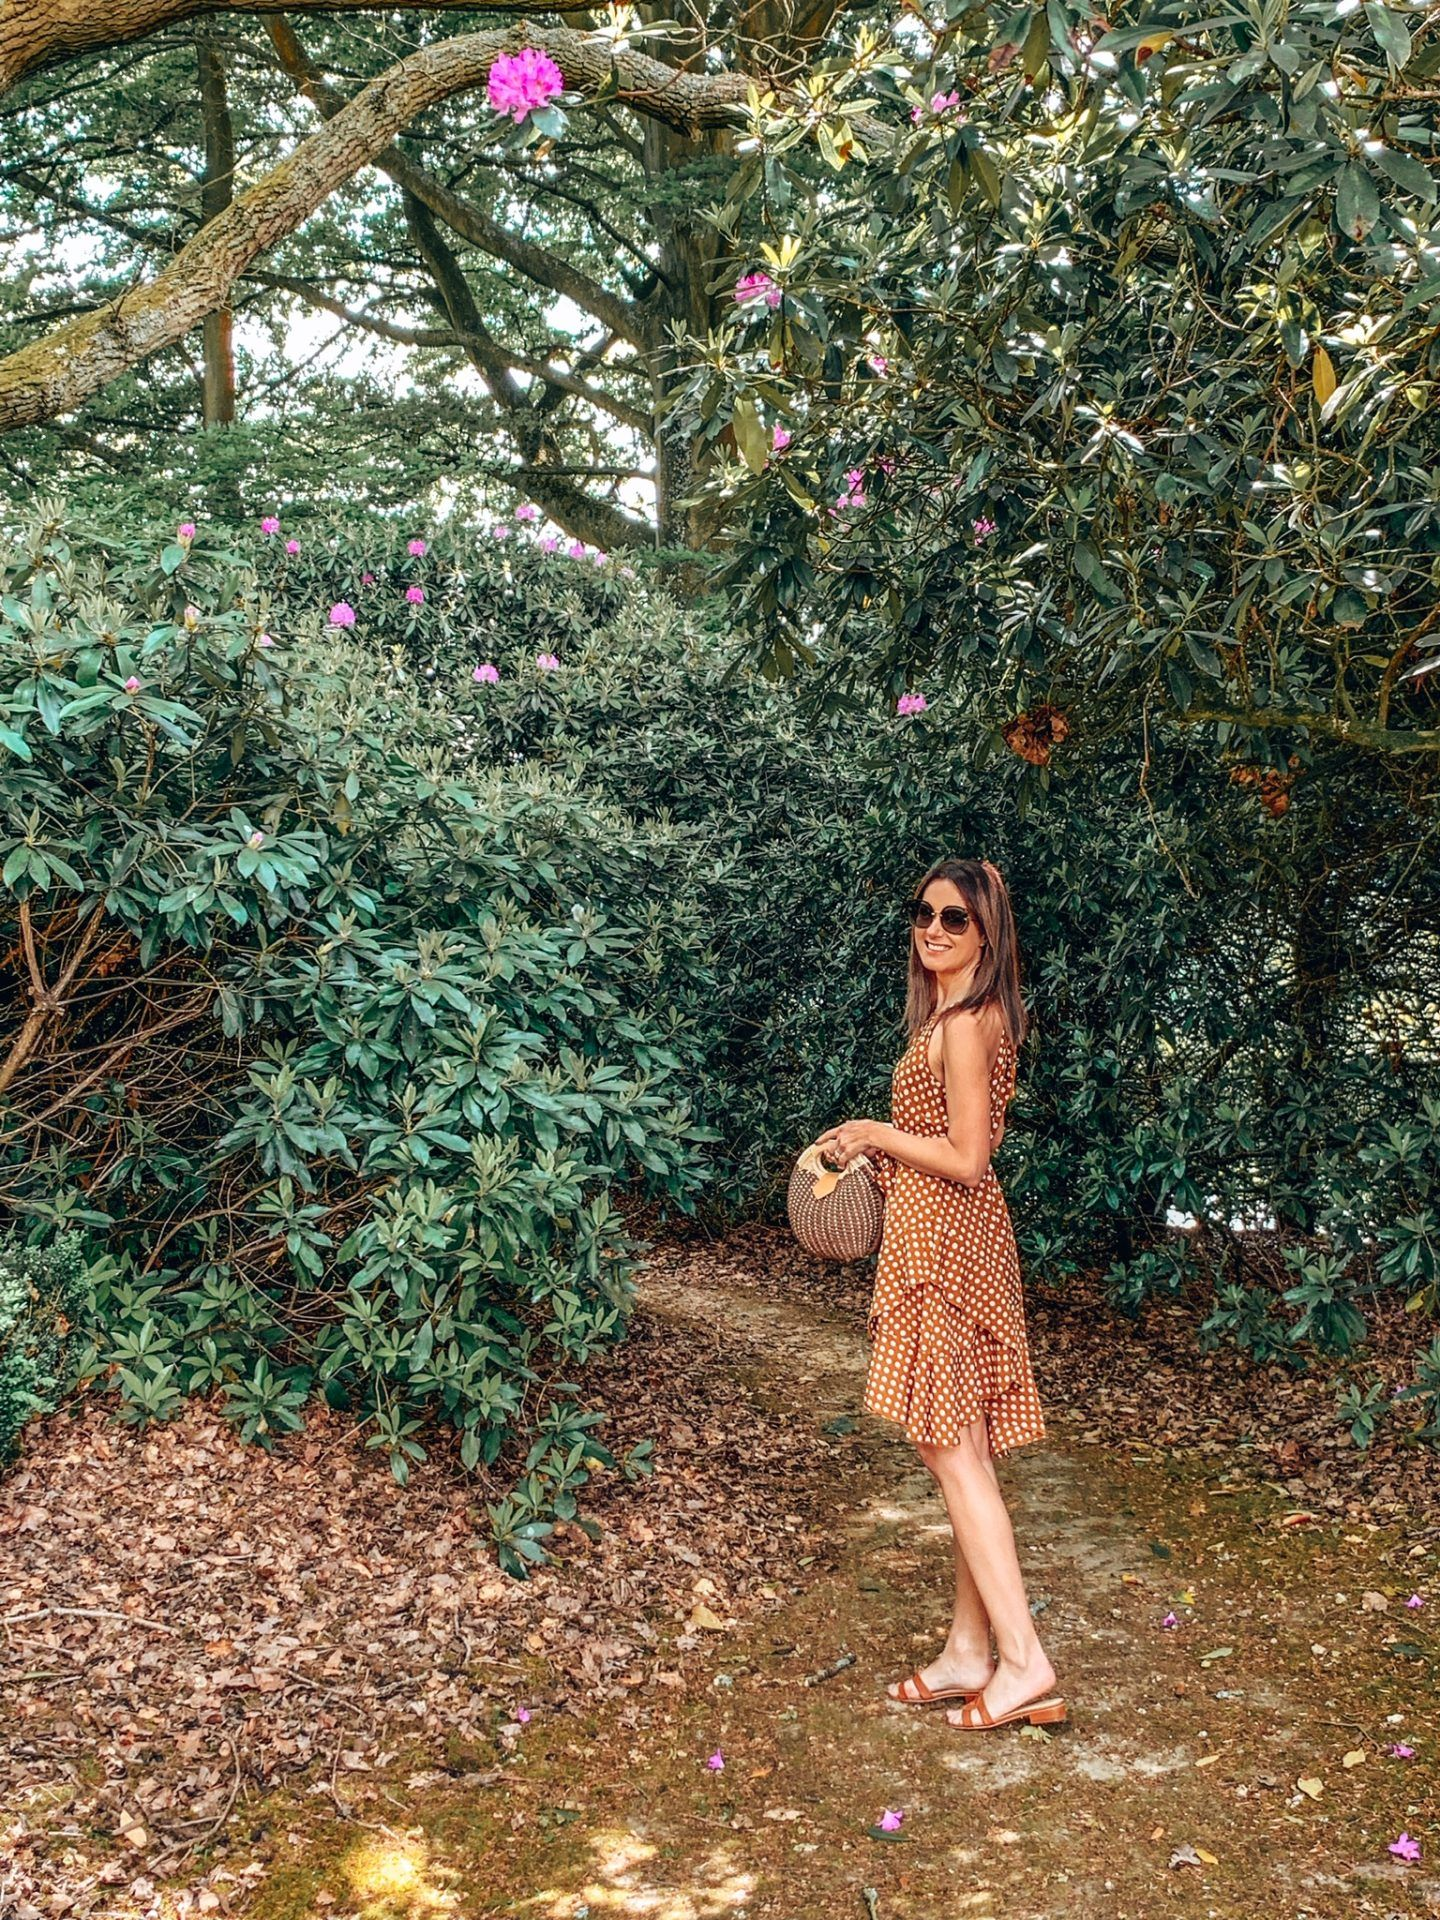 Alexander House | Luxury Five Star Hotel & Spa in West Sussex | Elegant Duchess Boutique Polka Dot dress and a straw bag